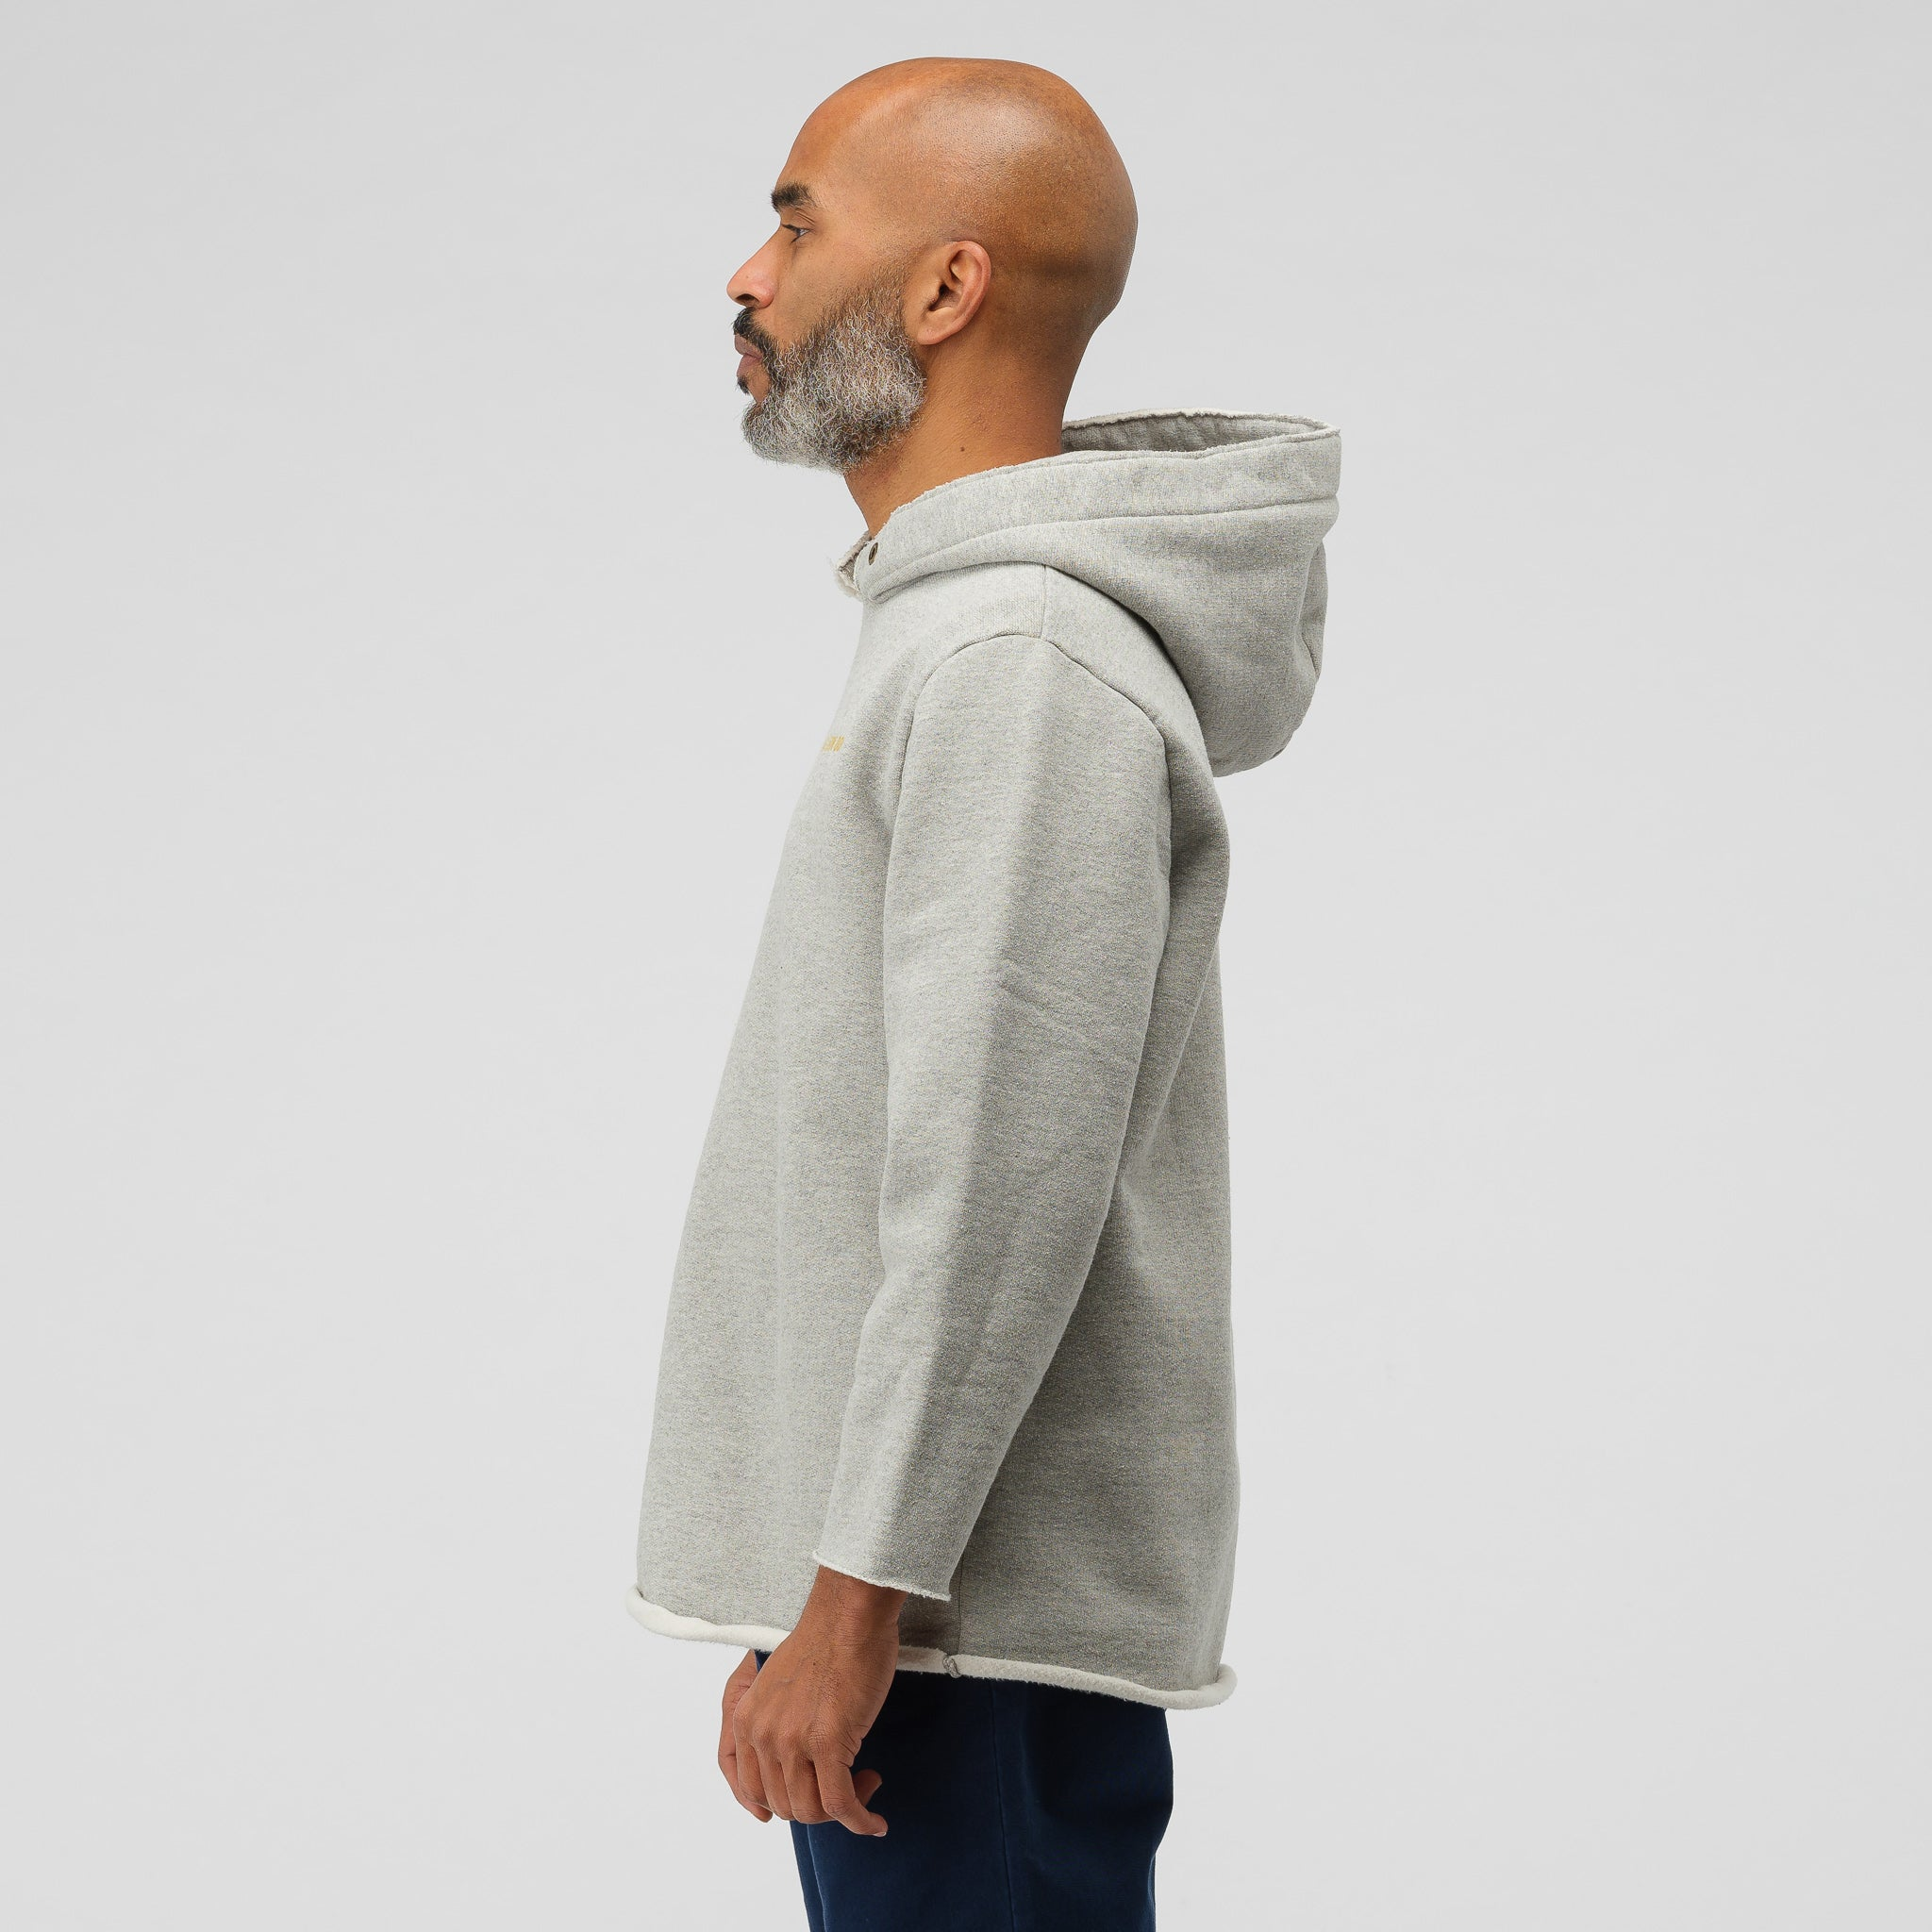 Deconstructed Gym Hoodie in Grey Mix